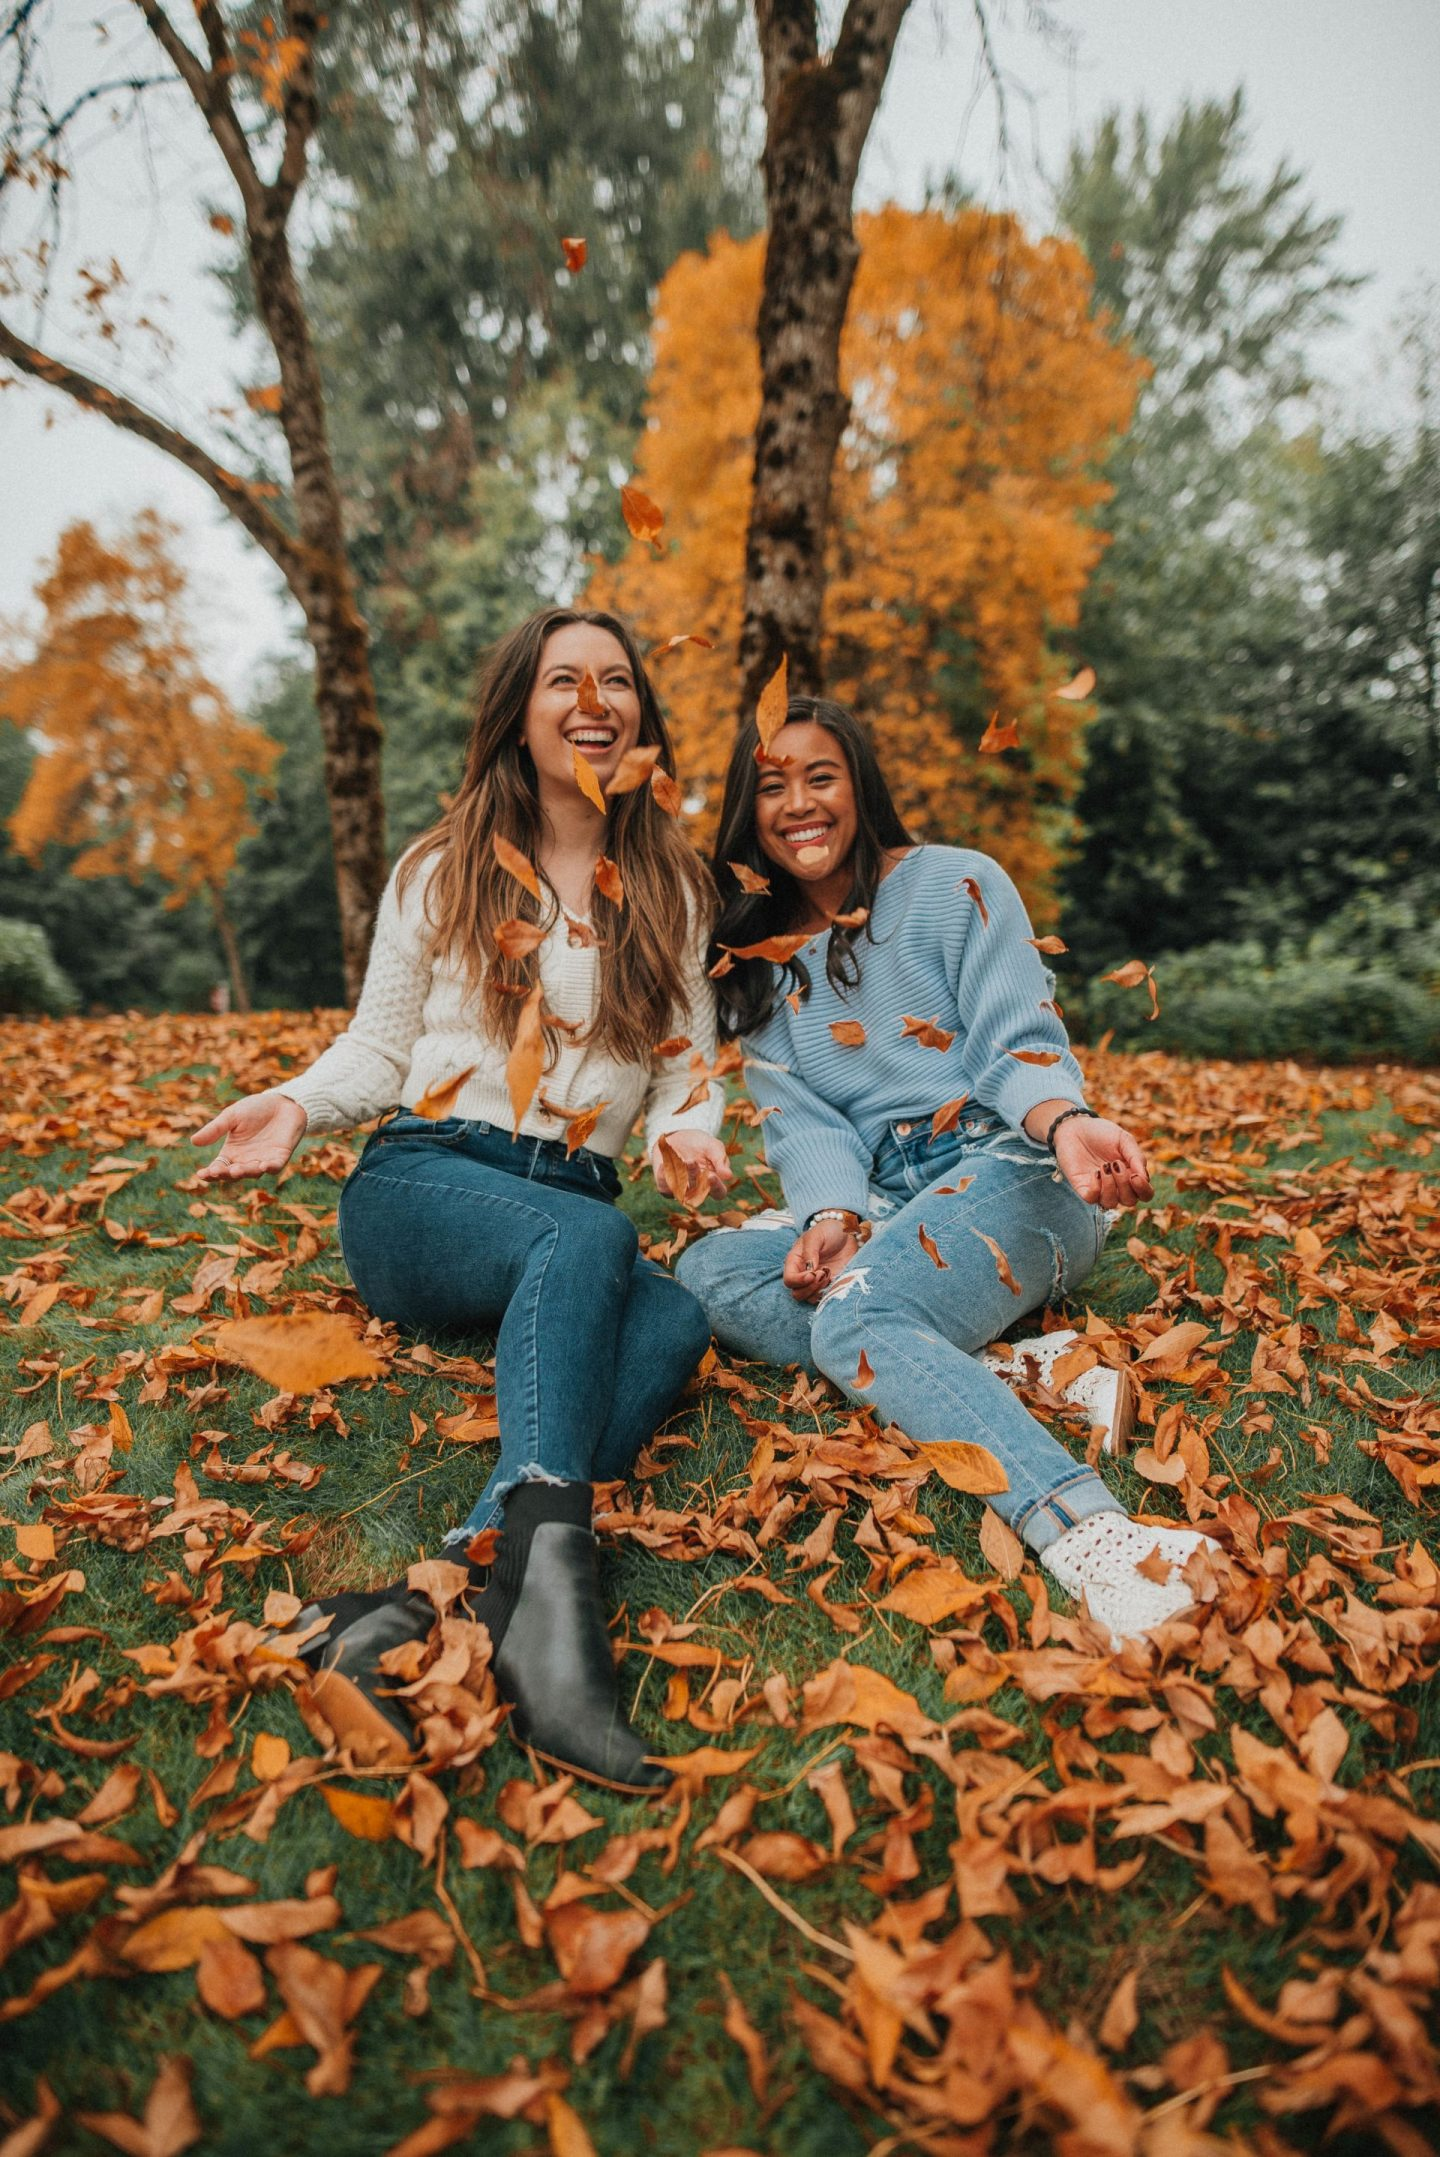 10 Fall Photo Ideas with Friends